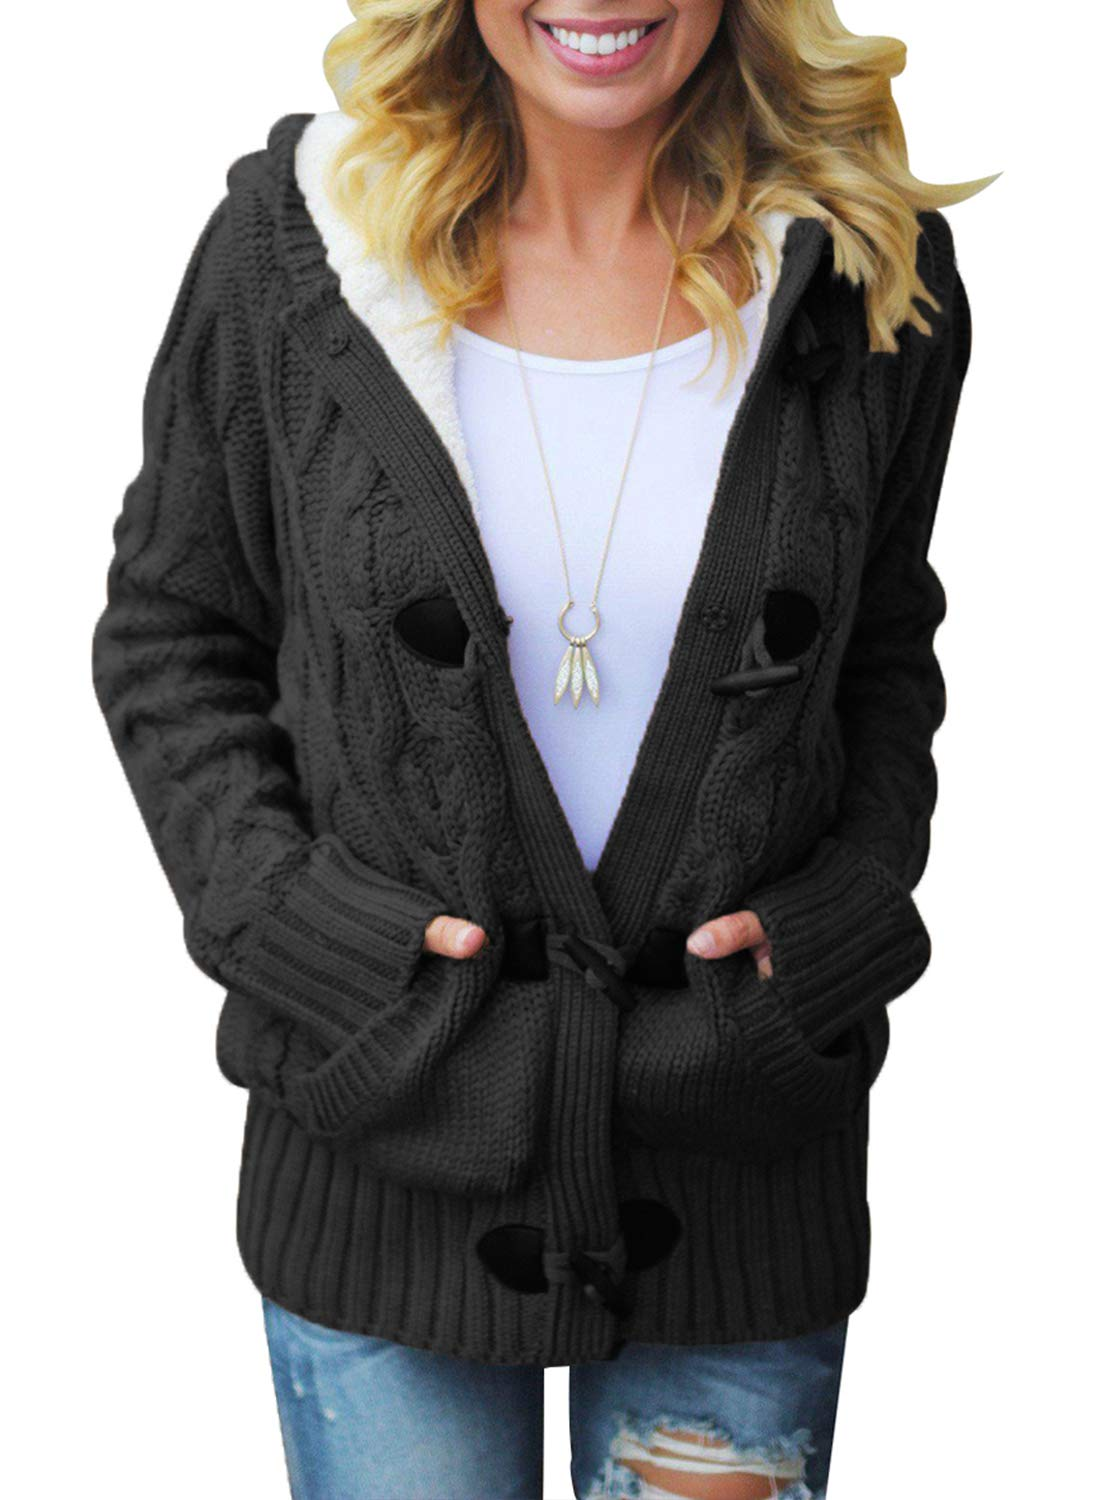 Dokotoo Womens Fashion Regular Plus Size Winter Hooded Casual Cardigans Solid Open Front Long Sleeve Cable Knit Sweater Fleece Coat Outwear Black X-Large by Dokotoo (Image #1)